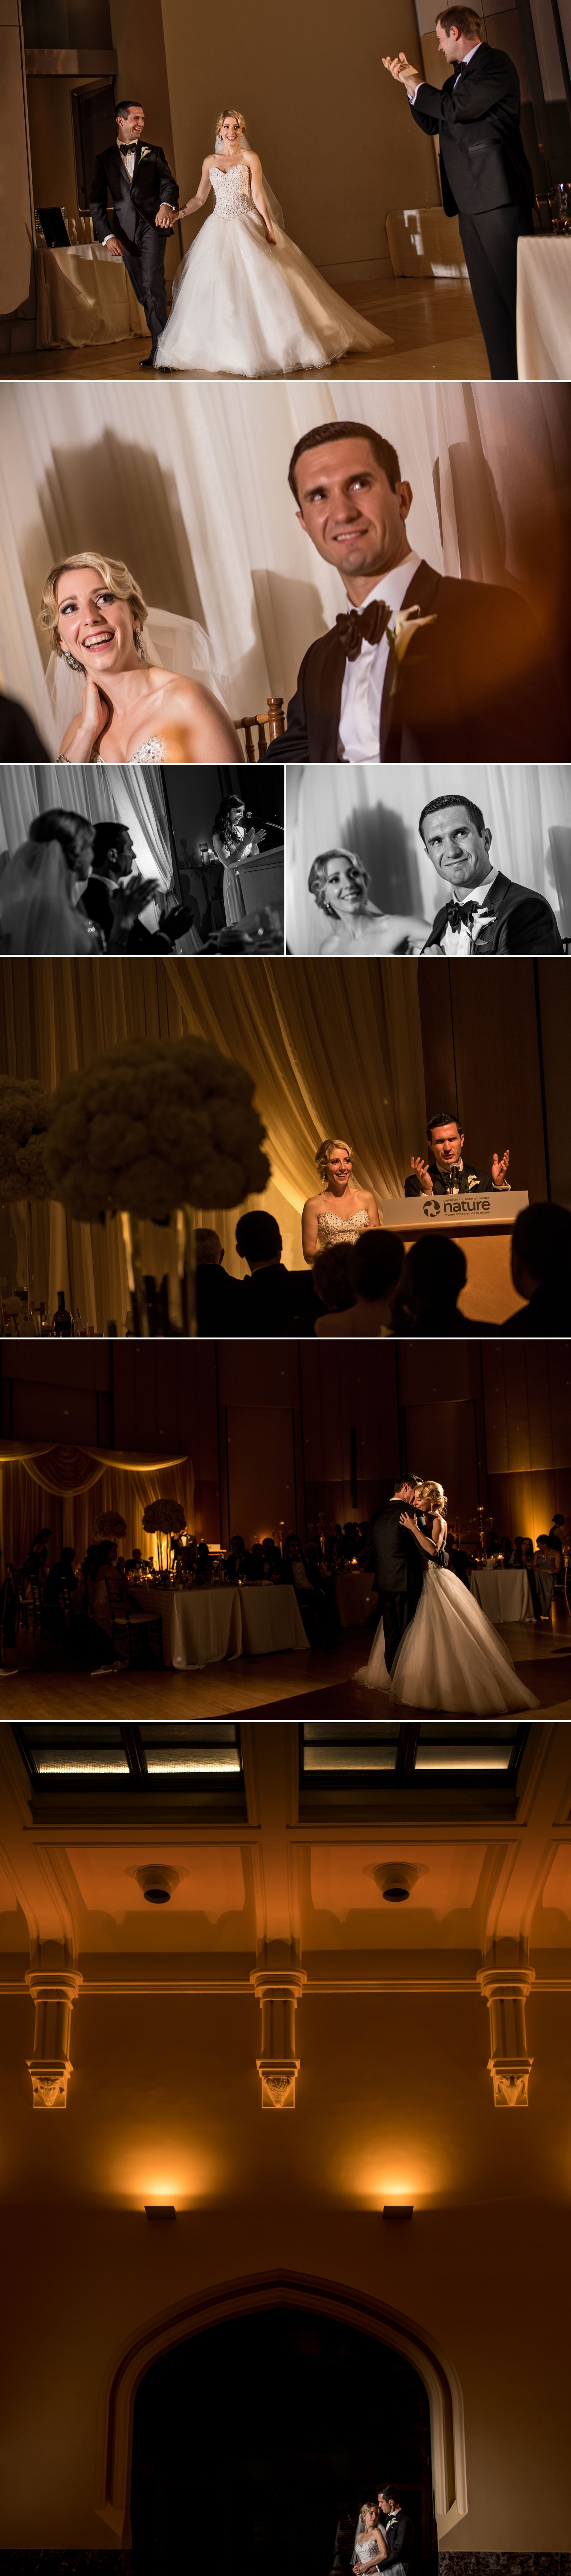 wedding-reception-held-at-the-museum-of-nature-ottawa